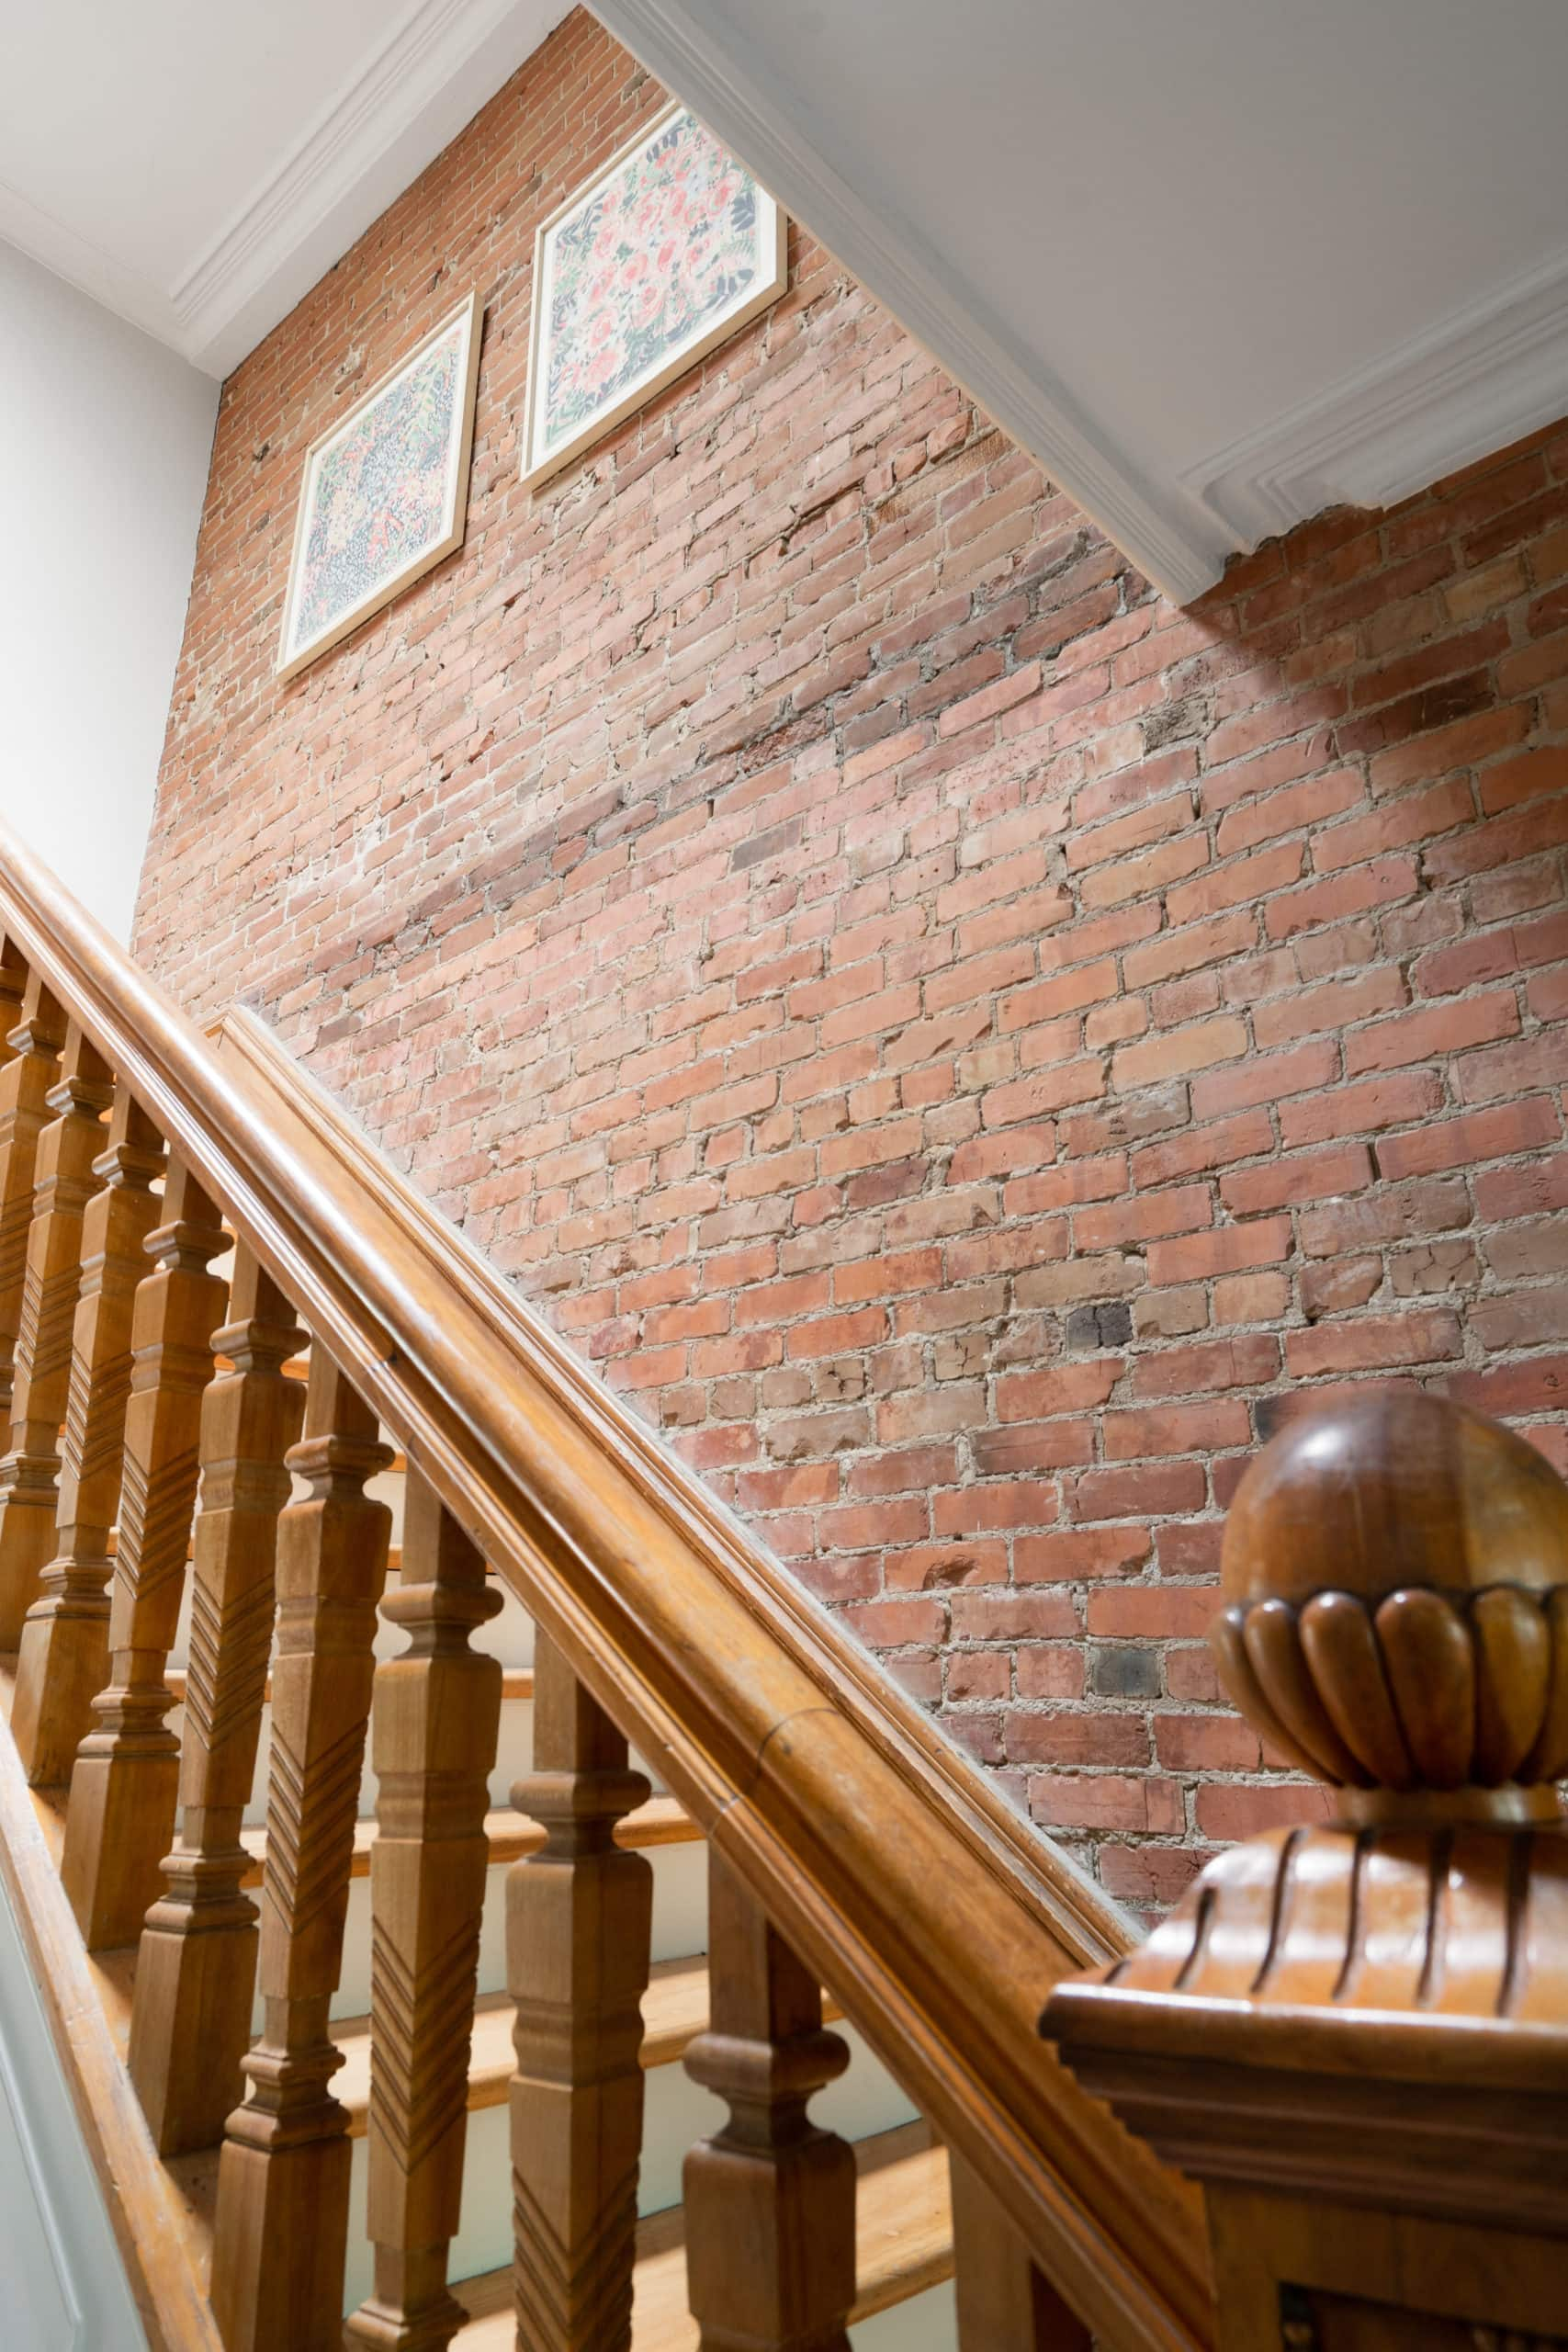 Staircase next to a brick wall